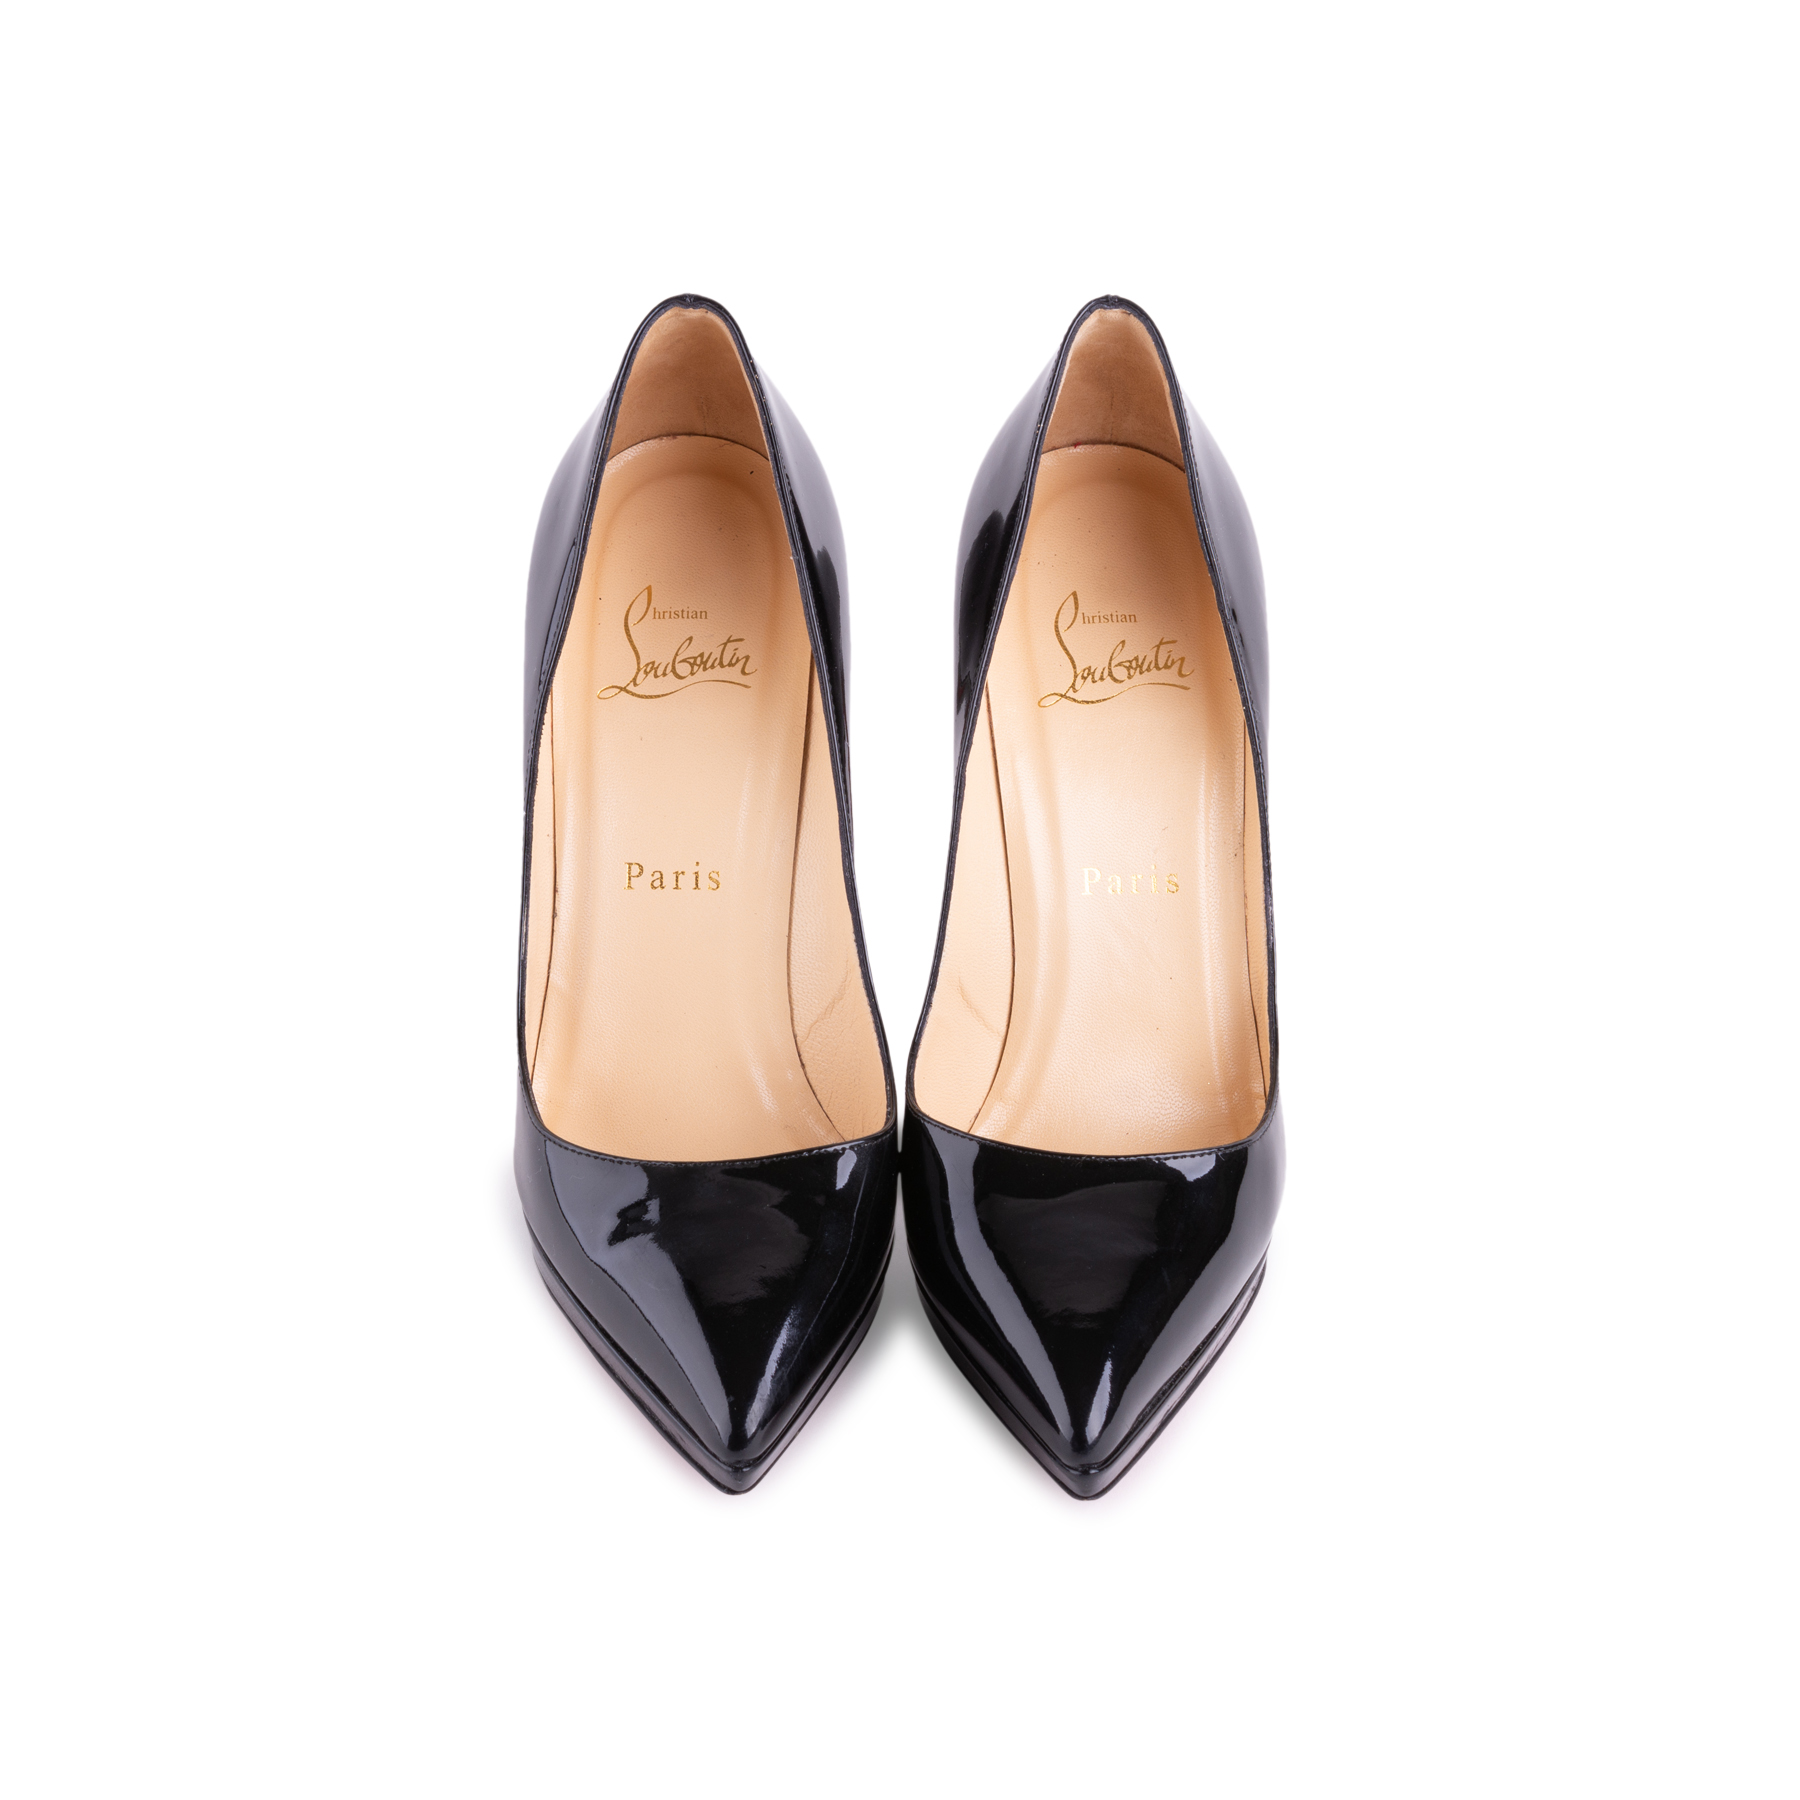 bec3cf87b044 Authentic Second Hand Christian Louboutin Pigalle Plato Pumps  (PSS-607-00005)